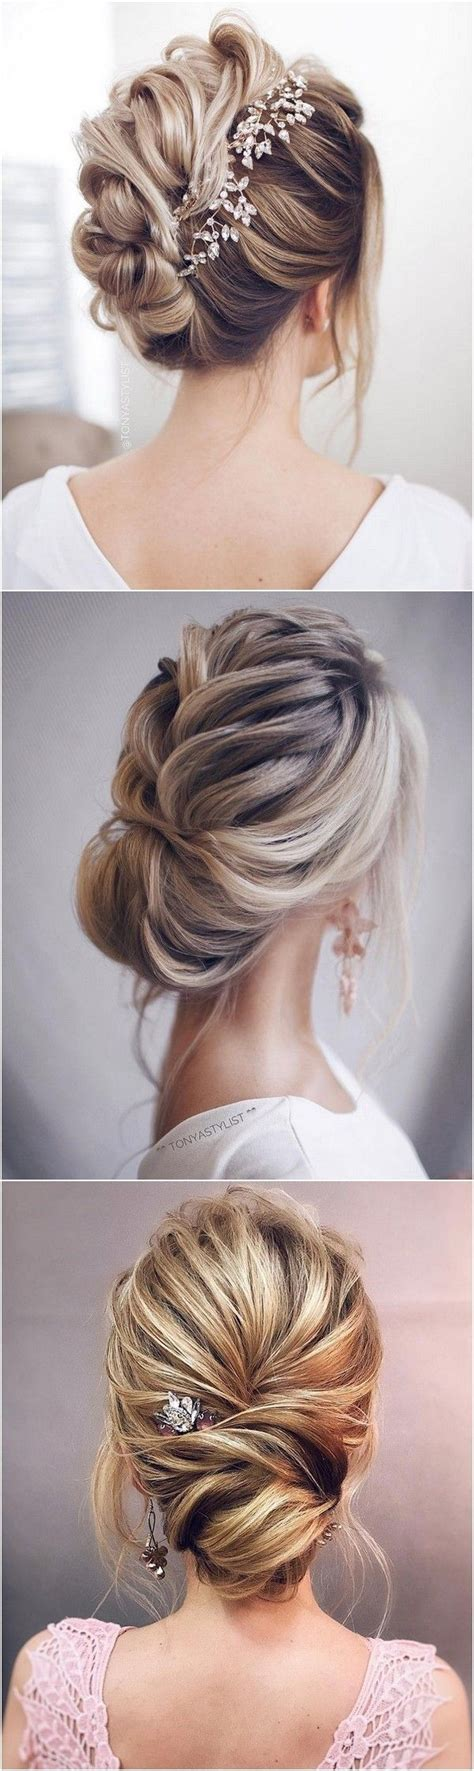 best 25 classic updo hairstyles ideas on classic updo wedding updo and classic